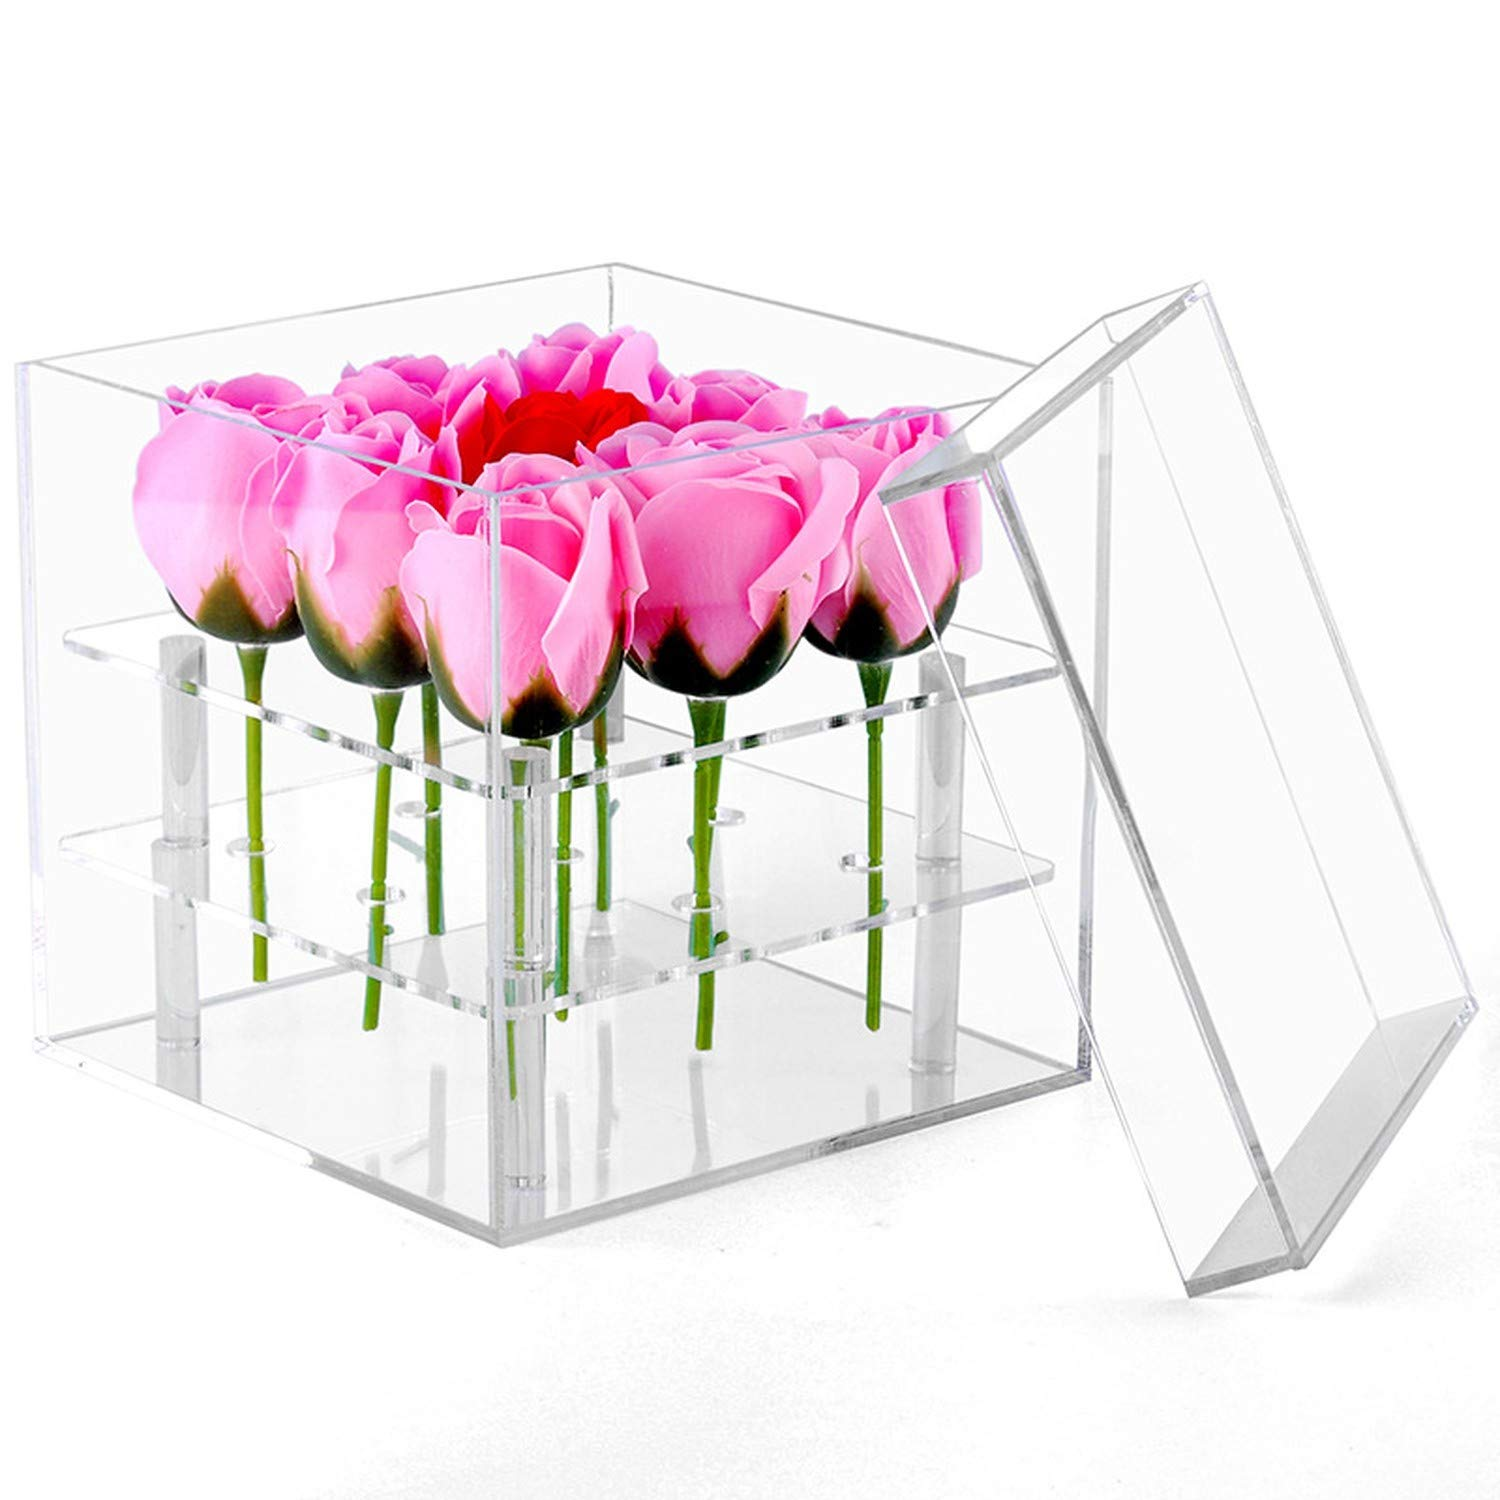 Clear Acrylic Rose Flower Box Makeup Organizer Cosmetic Tools Holder Flower Gift Box for Girlfriend Wife with Cover,16 Holes by Sweet But Psycho Flower Box